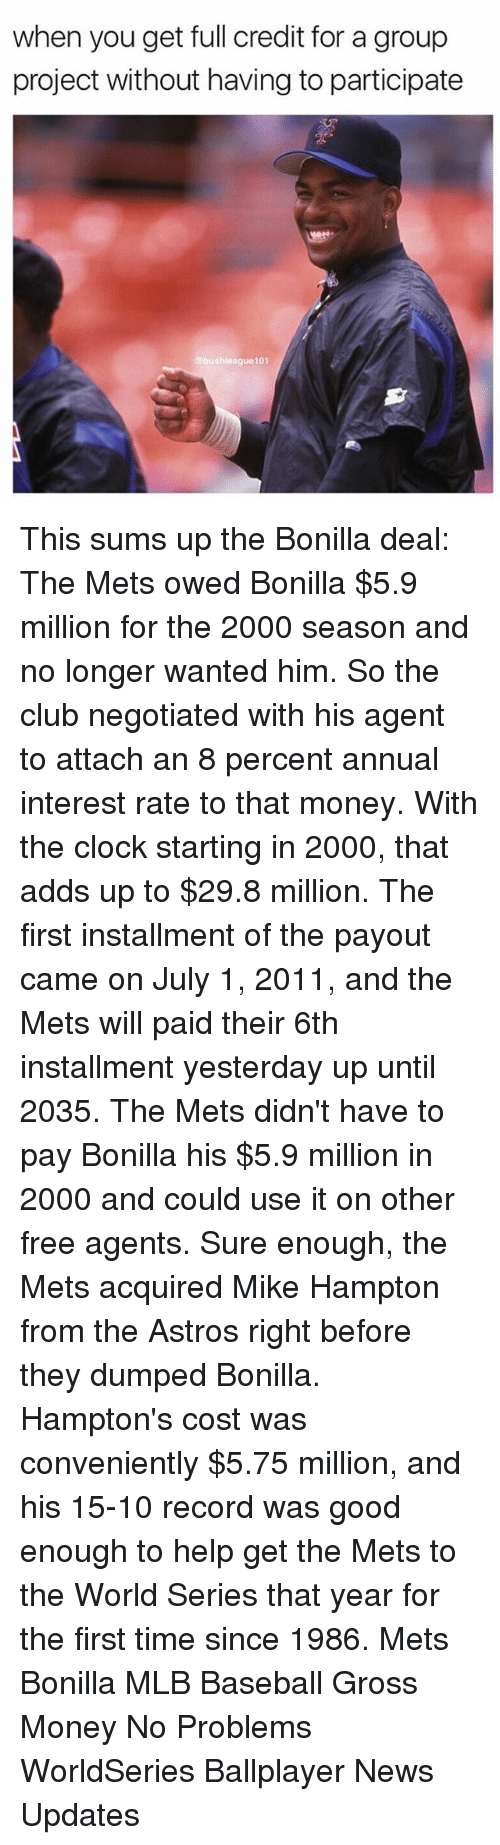 Baseball, Clock, and Club: when you get full credit for a group  project without having to participate  bushleague101 This sums up the Bonilla deal: The Mets owed Bonilla $5.9 million for the 2000 season and no longer wanted him. So the club negotiated with his agent to attach an 8 percent annual interest rate to that money. With the clock starting in 2000, that adds up to $29.8 million. The first installment of the payout came on July 1, 2011, and the Mets will paid their 6th installment yesterday up until 2035. The Mets didn't have to pay Bonilla his $5.9 million in 2000 and could use it on other free agents. Sure enough, the Mets acquired Mike Hampton from the Astros right before they dumped Bonilla. Hampton's cost was conveniently $5.75 million, and his 15-10 record was good enough to help get the Mets to the World Series that year for the first time since 1986. Mets Bonilla MLB Baseball Gross Money No Problems WorldSeries Ballplayer News Updates